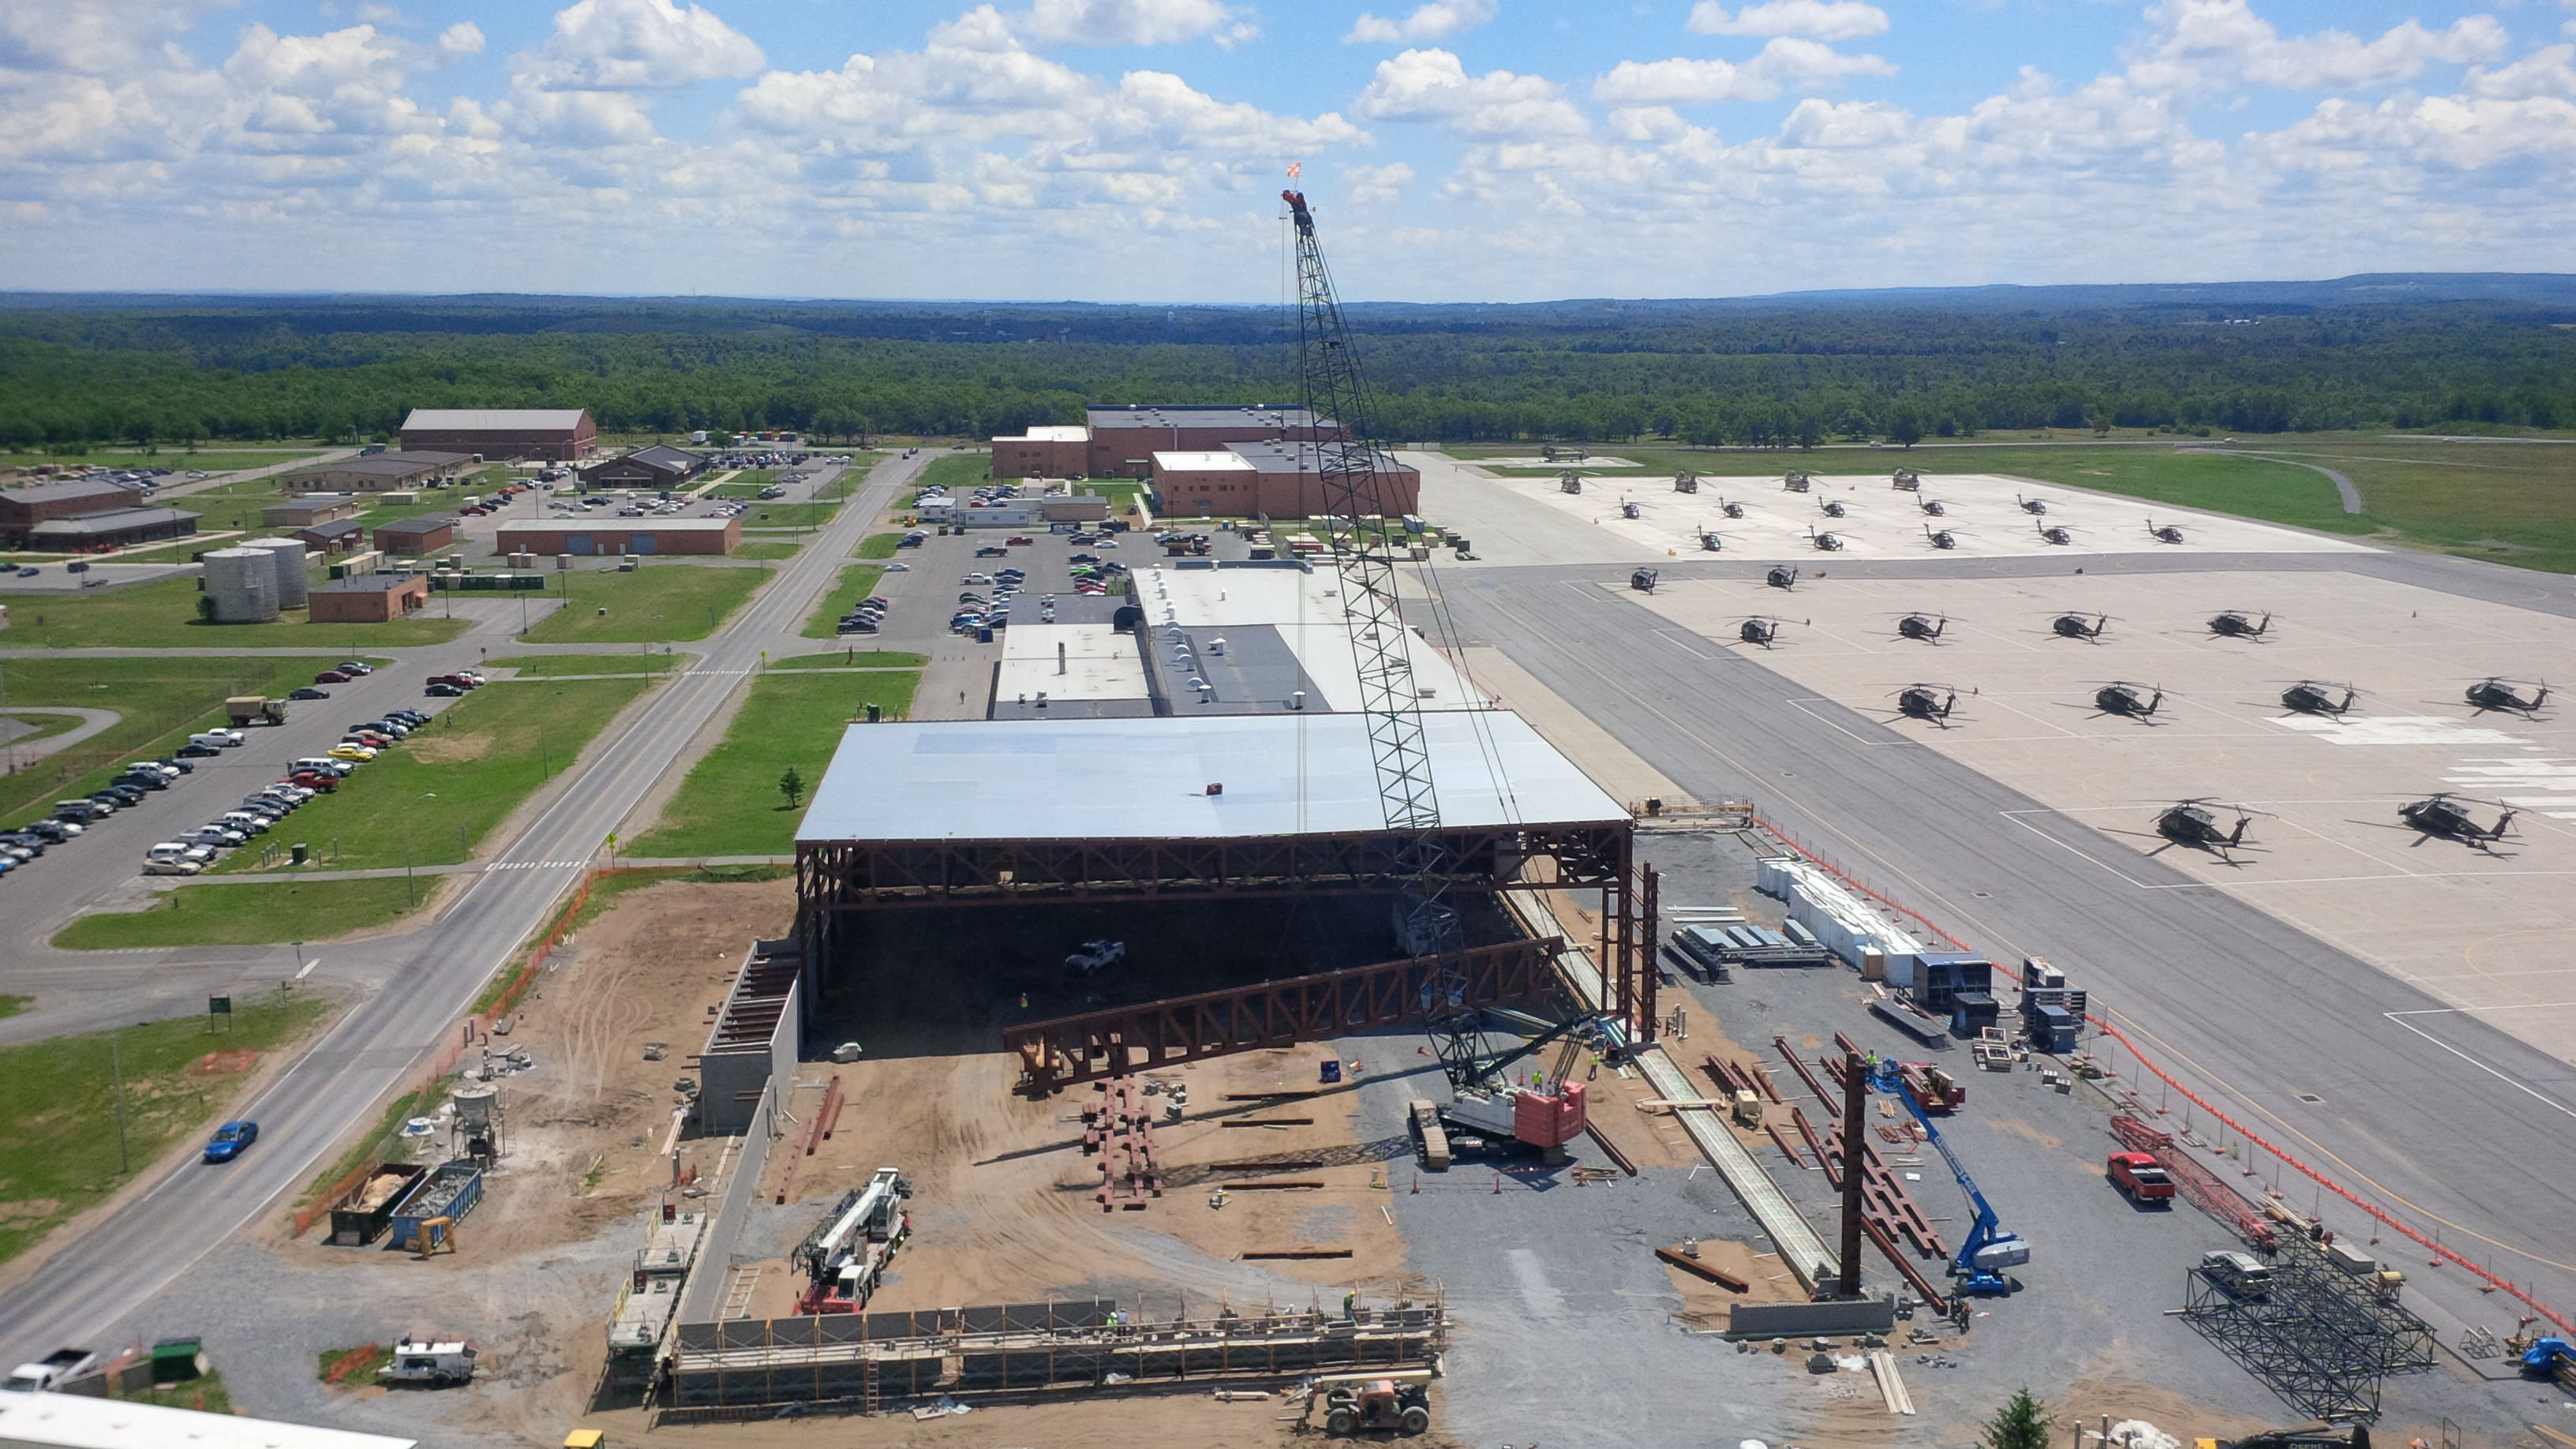 John P. Stopen Fort Drum Hangar Project drone view construction